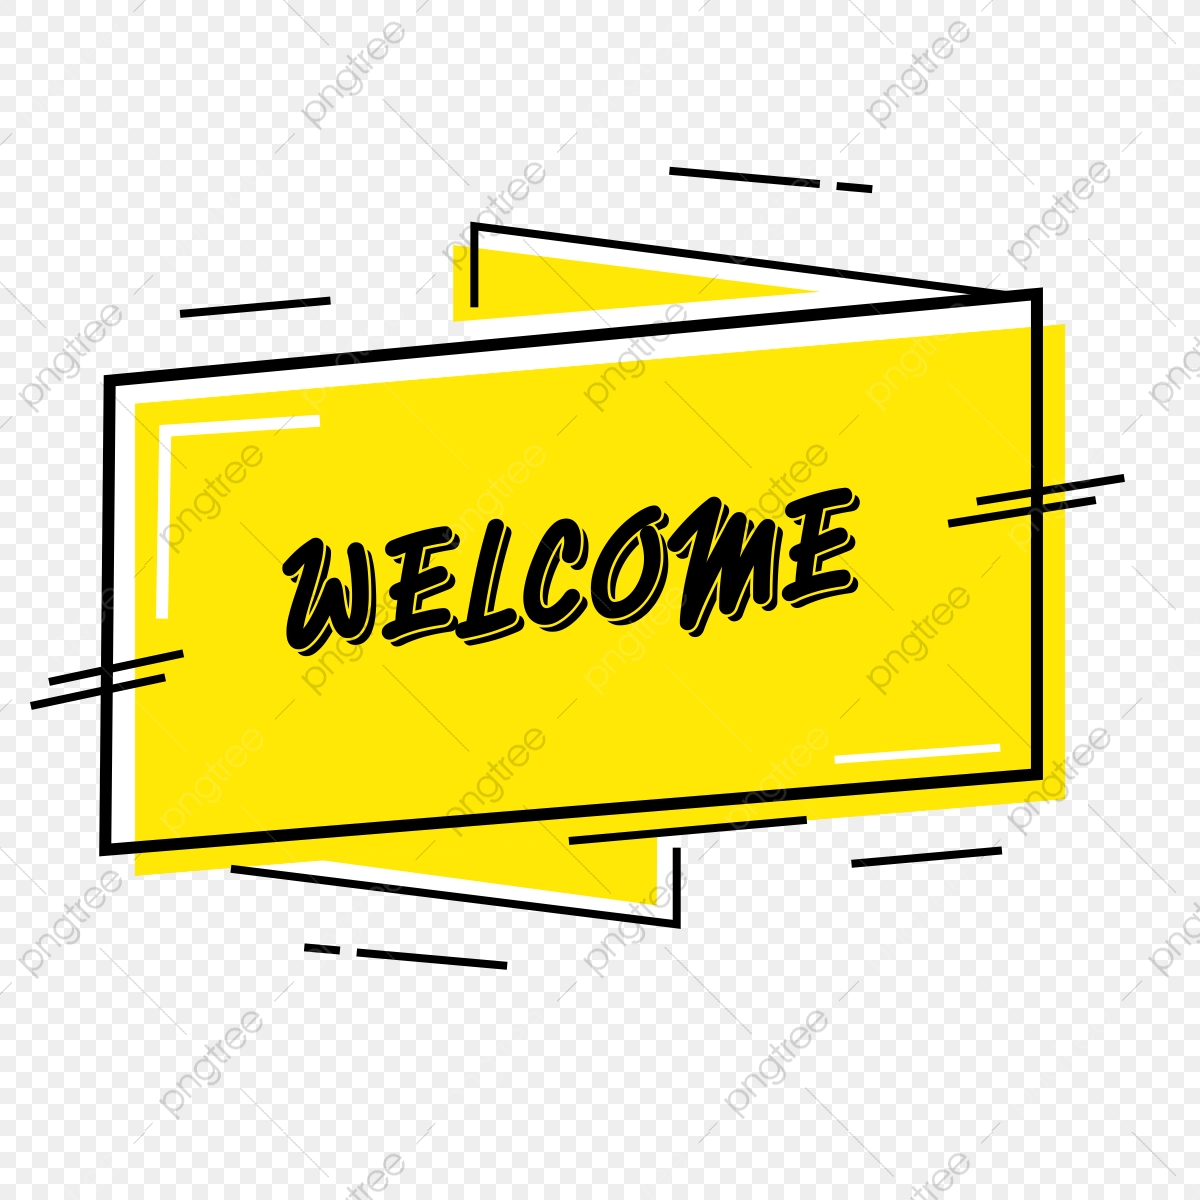 Yellow Banner Clipart The Welcome, Png, Art, Design PNG and Vector.